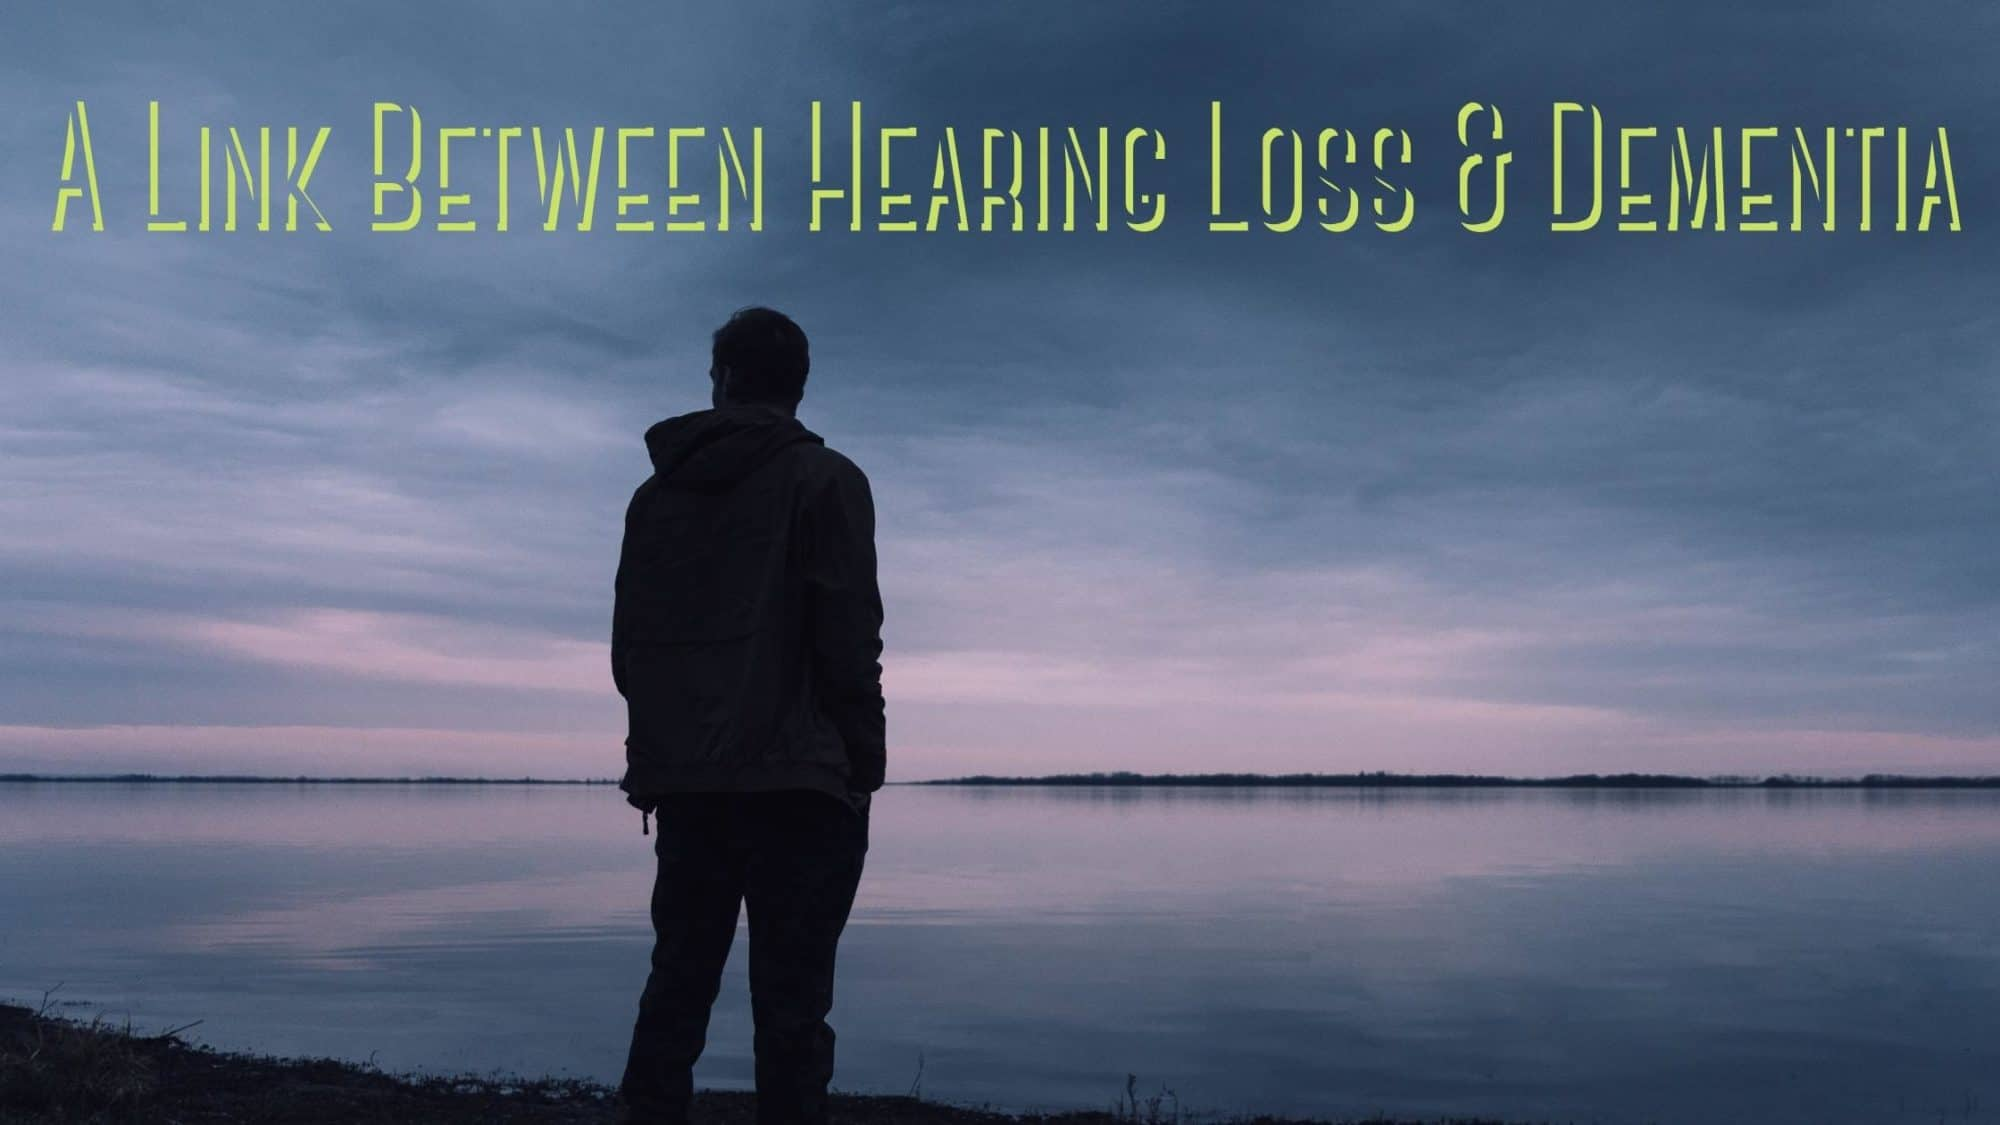 A Link Between Hearing Loss & Dementia